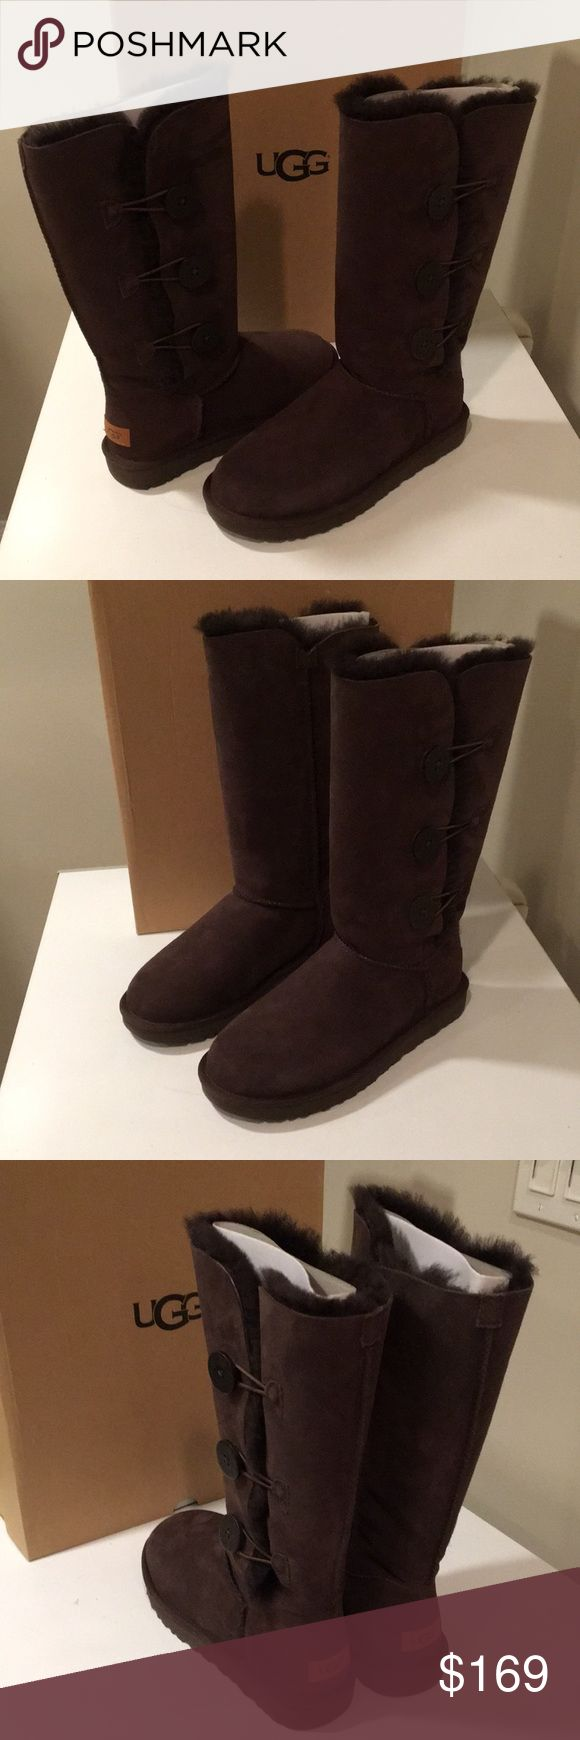 New Ugg Triple Button Bailey chocolate boots 9 ❤️ New Ugg Triple Button Bailey tall boots Color chocolate Size 9   Twin faced sheepskin uppers with suede heel guards for added structure. It is water resistant and stain resistant. Boot cuff can be worn up or folded over depending on style preference. Wooden button and elastic band closure for easier on and off wearability. Fully lined with shearling and has a foam outsole   Measurements: Heel Height: 1 in Circumference: 16 in Shaft: 12 in…